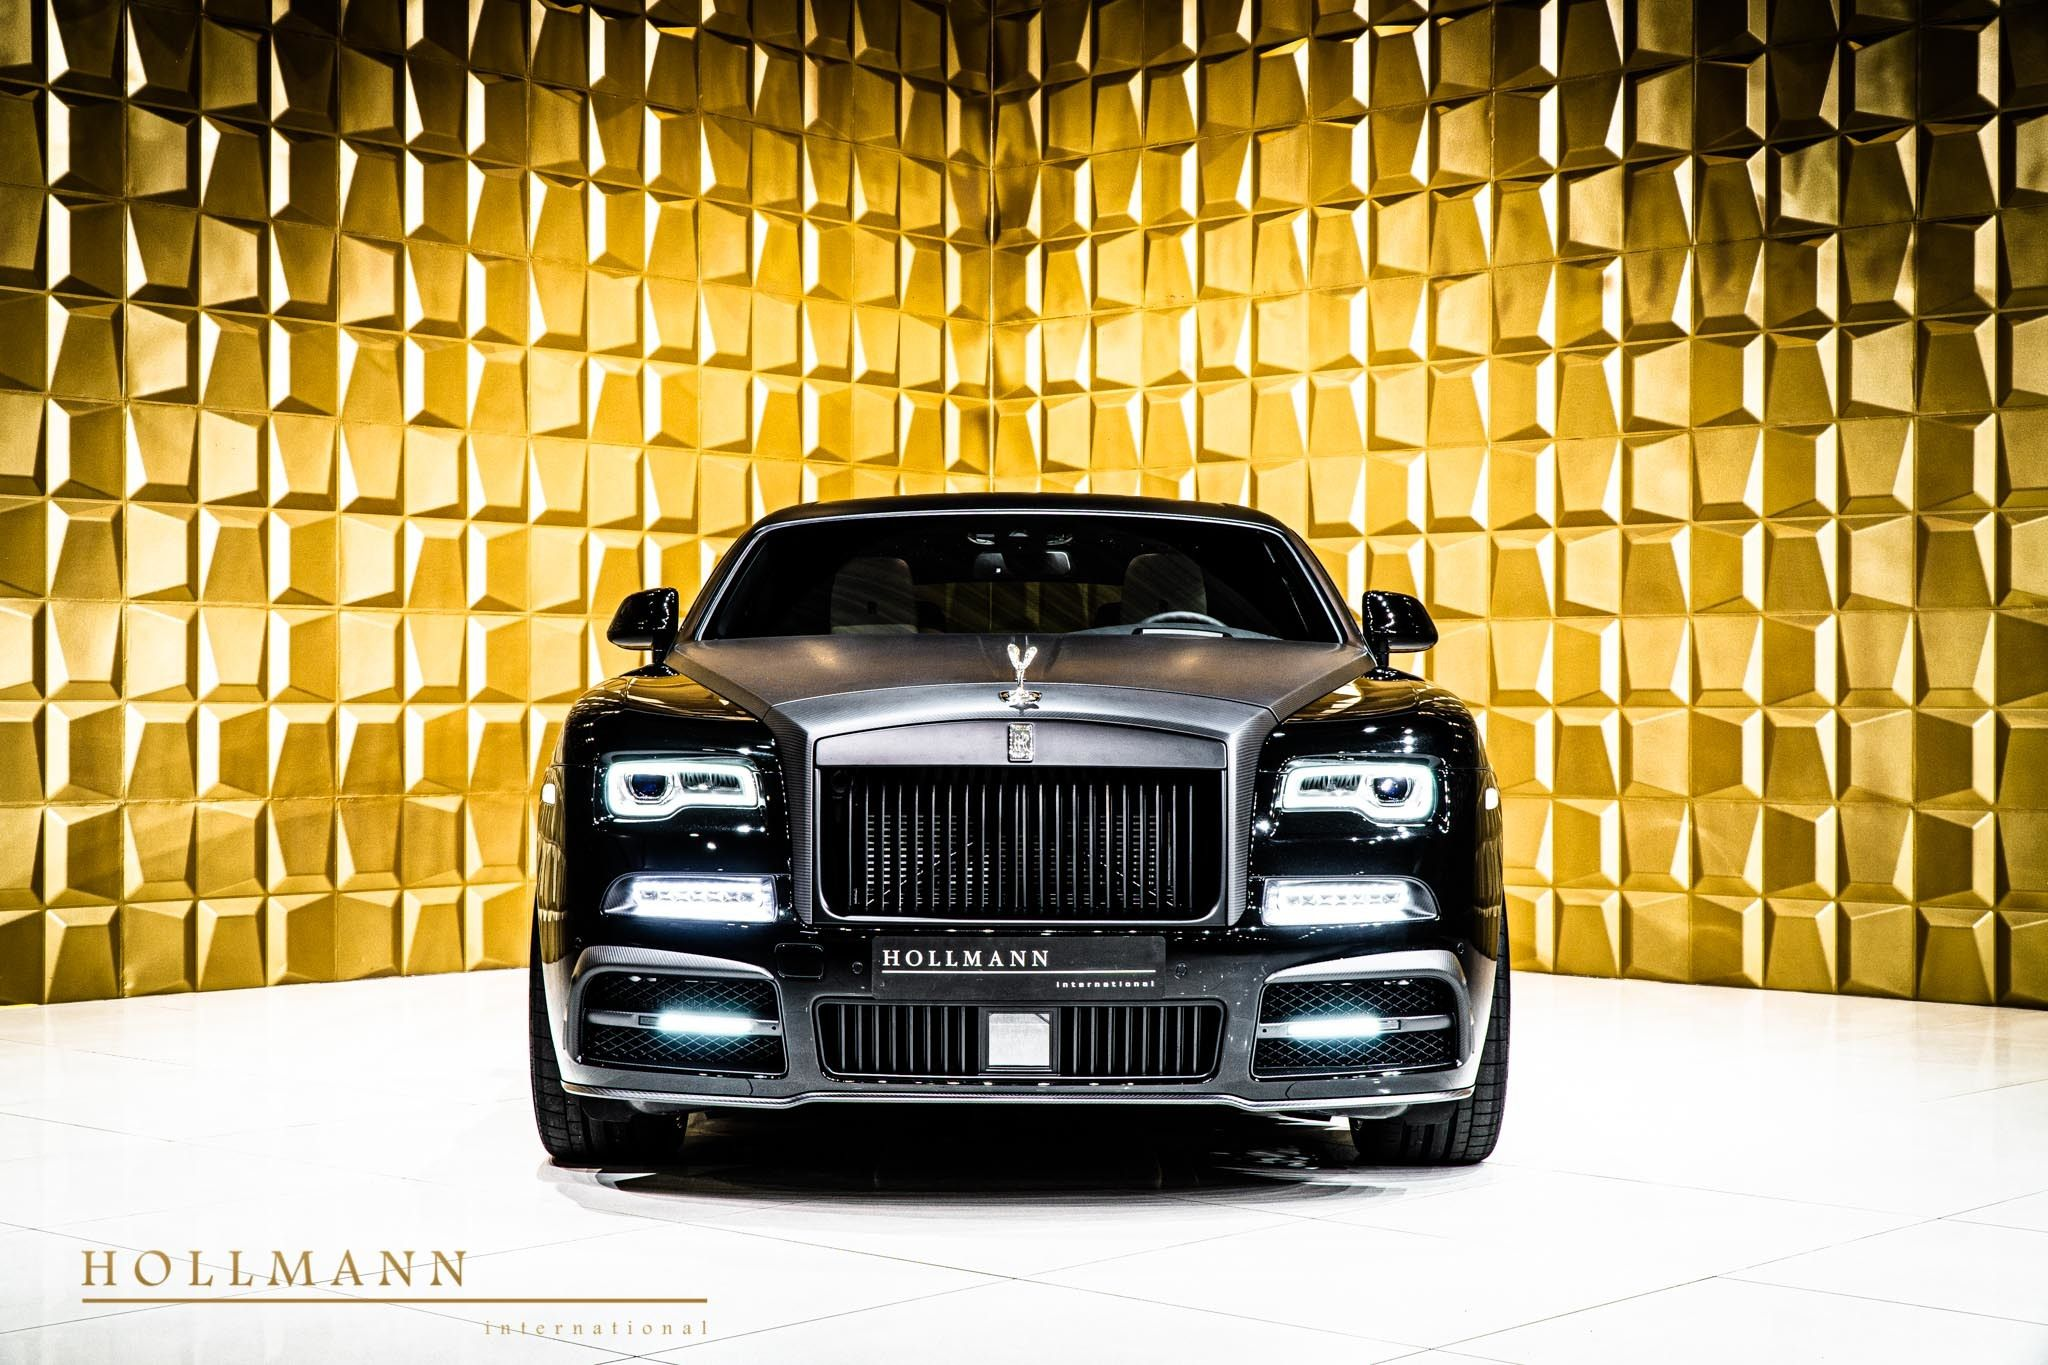 Rolls Royce Wraith By Mansory Hollmann International Germany For Sale On Luxurypulse In 2020 Rolls Royce Wraith Rolls Royce Royce